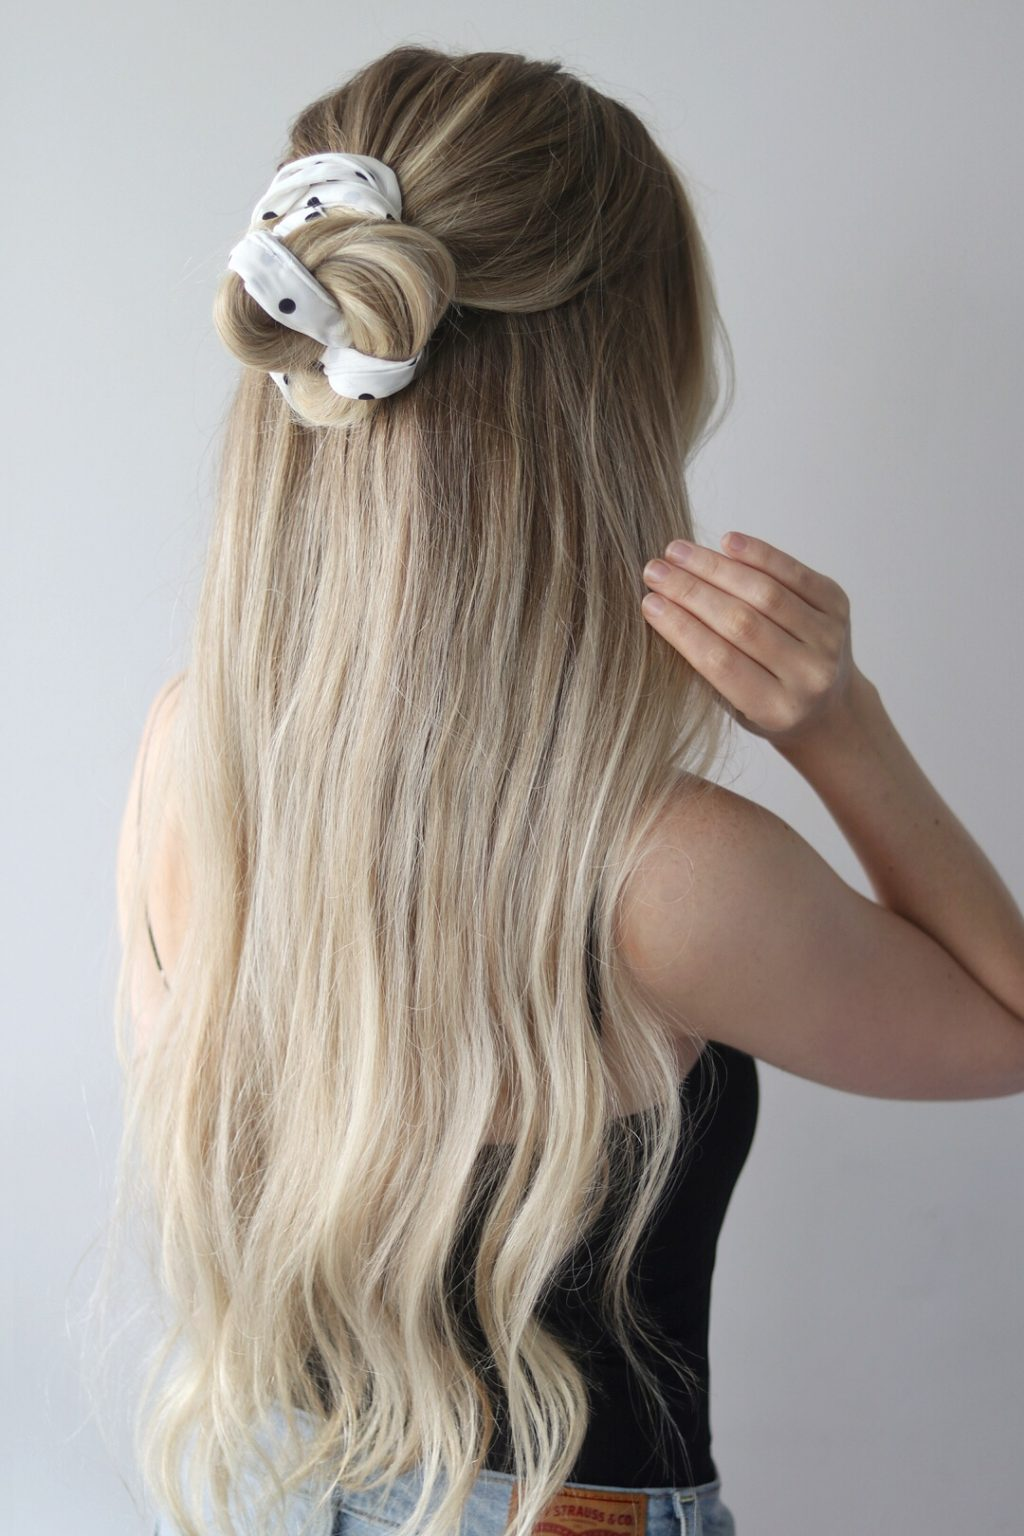 15 Bandana and Scarf Hairstyles You Need To Try